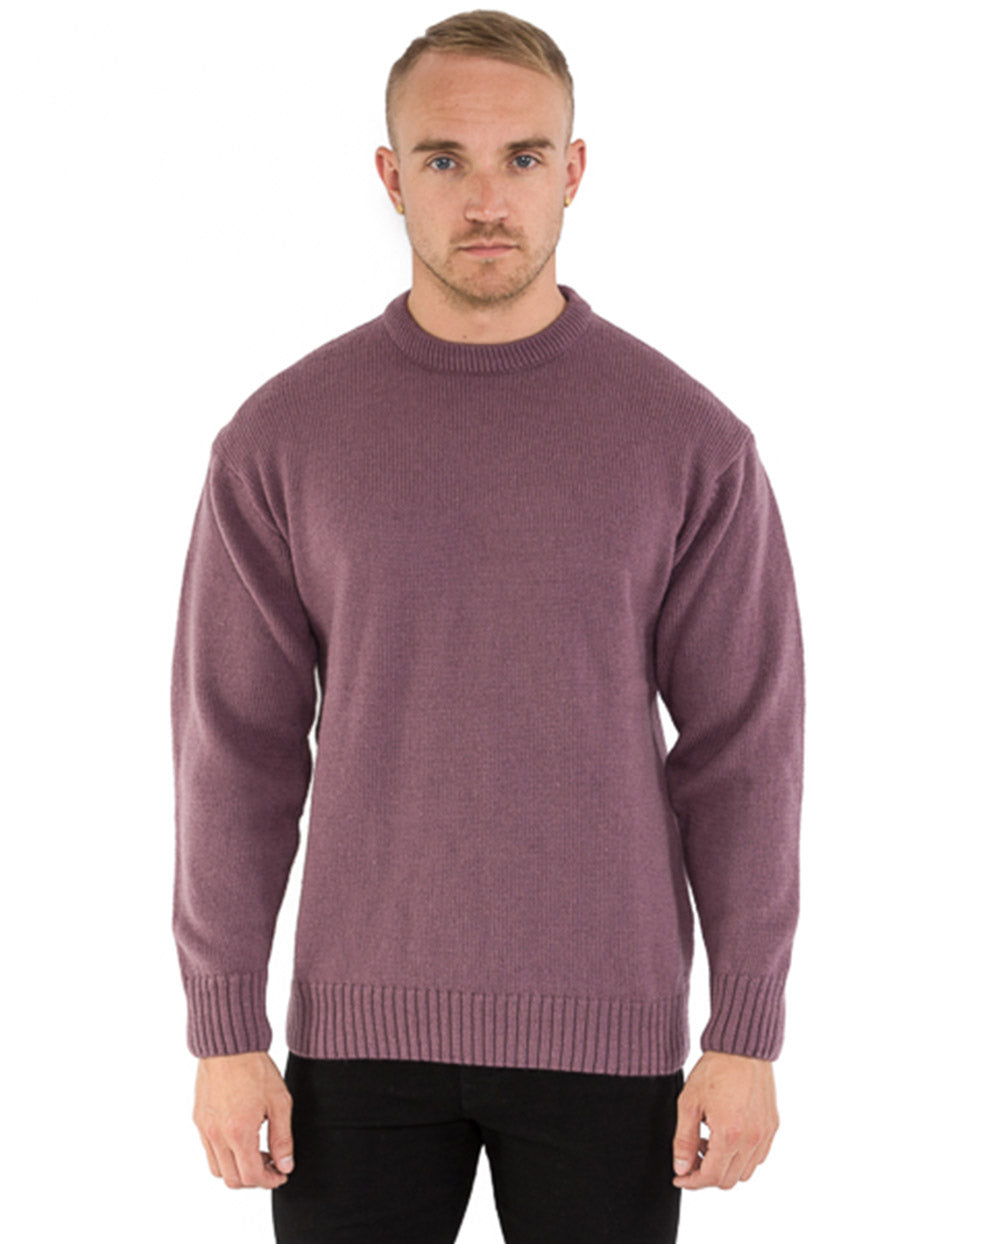 LILAC MERINO WOOL SWEATER